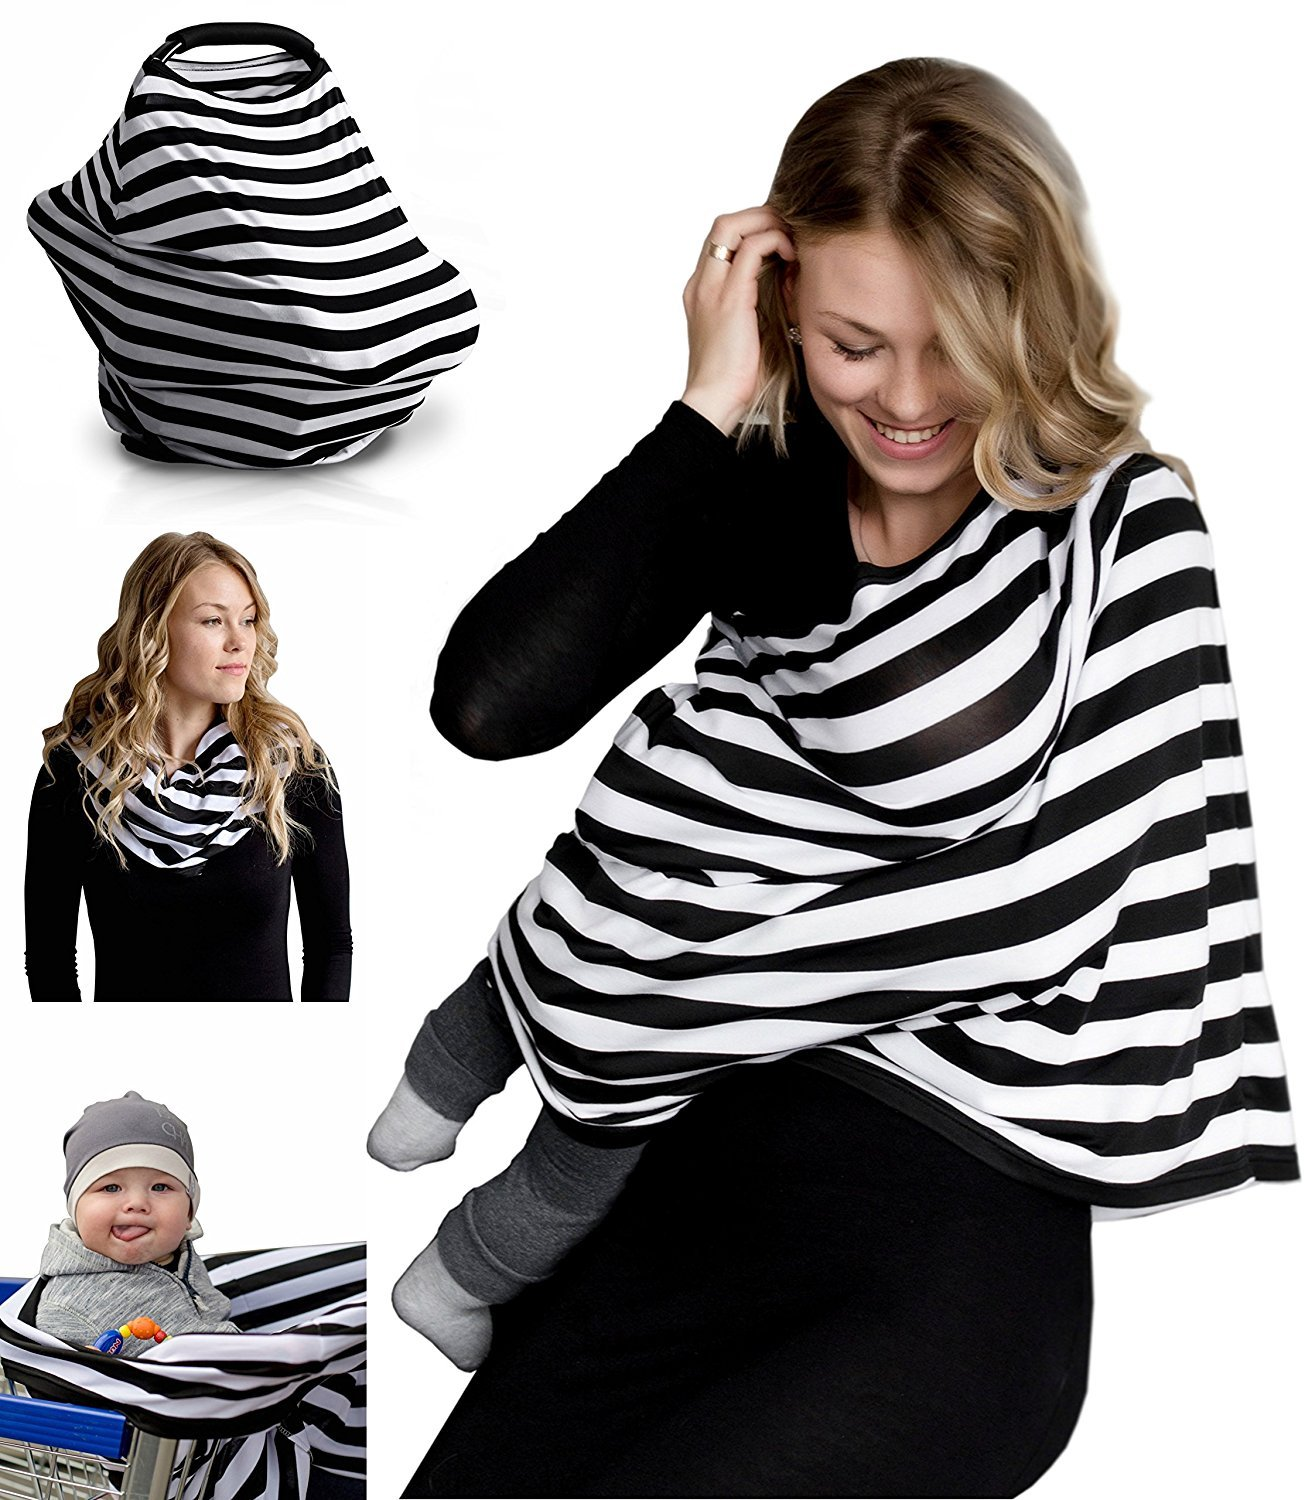 Nursing Breastfeeding Cover Scarf - Baby Car Seat Canopy, Shopping Cart, Stroller, Car seat Covers for Girls and Boys - Best Multi-Use Infinity Stretchy Shawl: Amazon.ca: Bébés